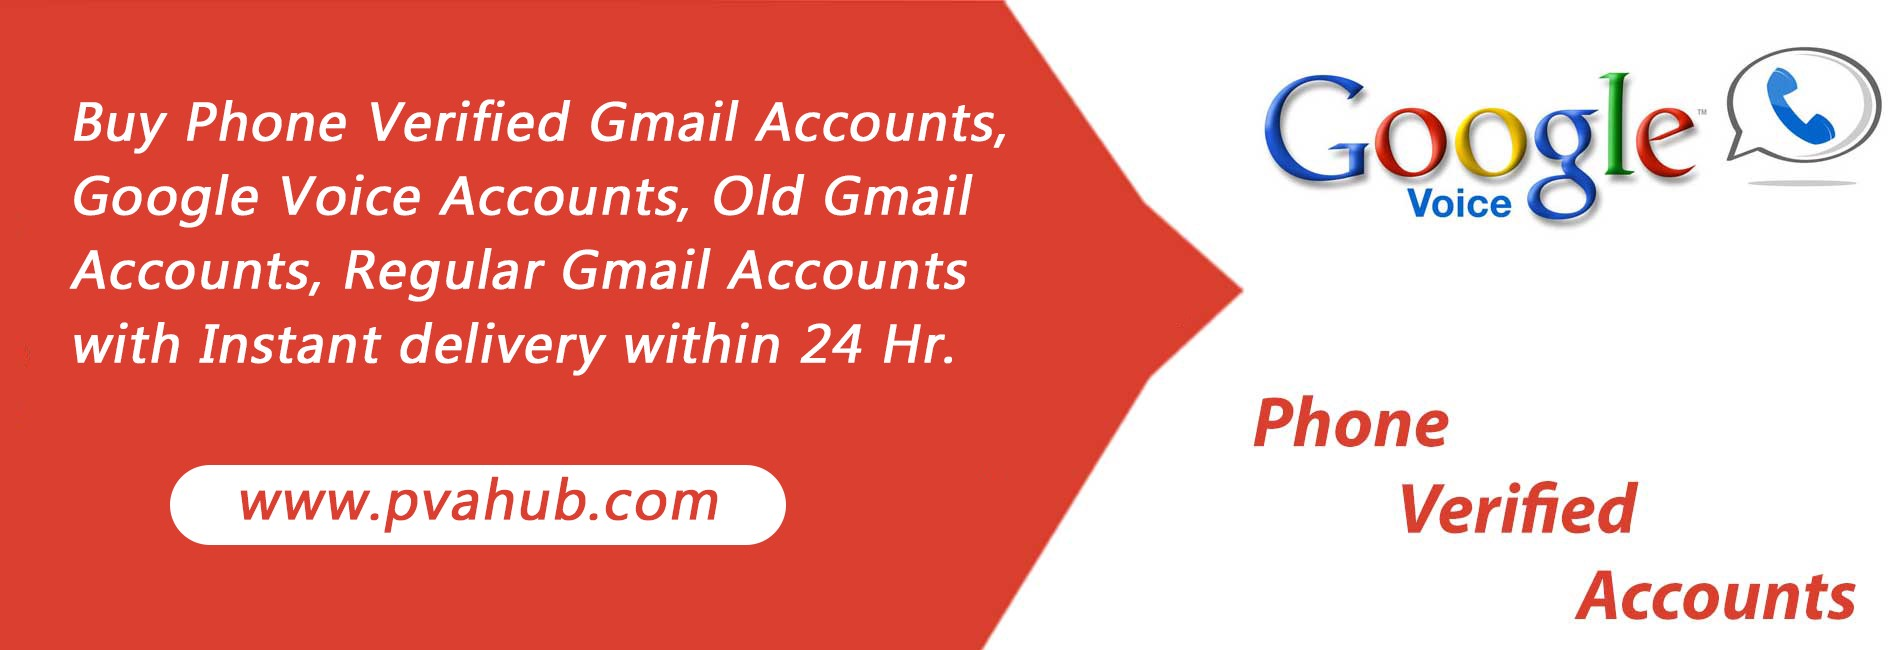 Gmail Phone Verified Accounts and its Features - pva